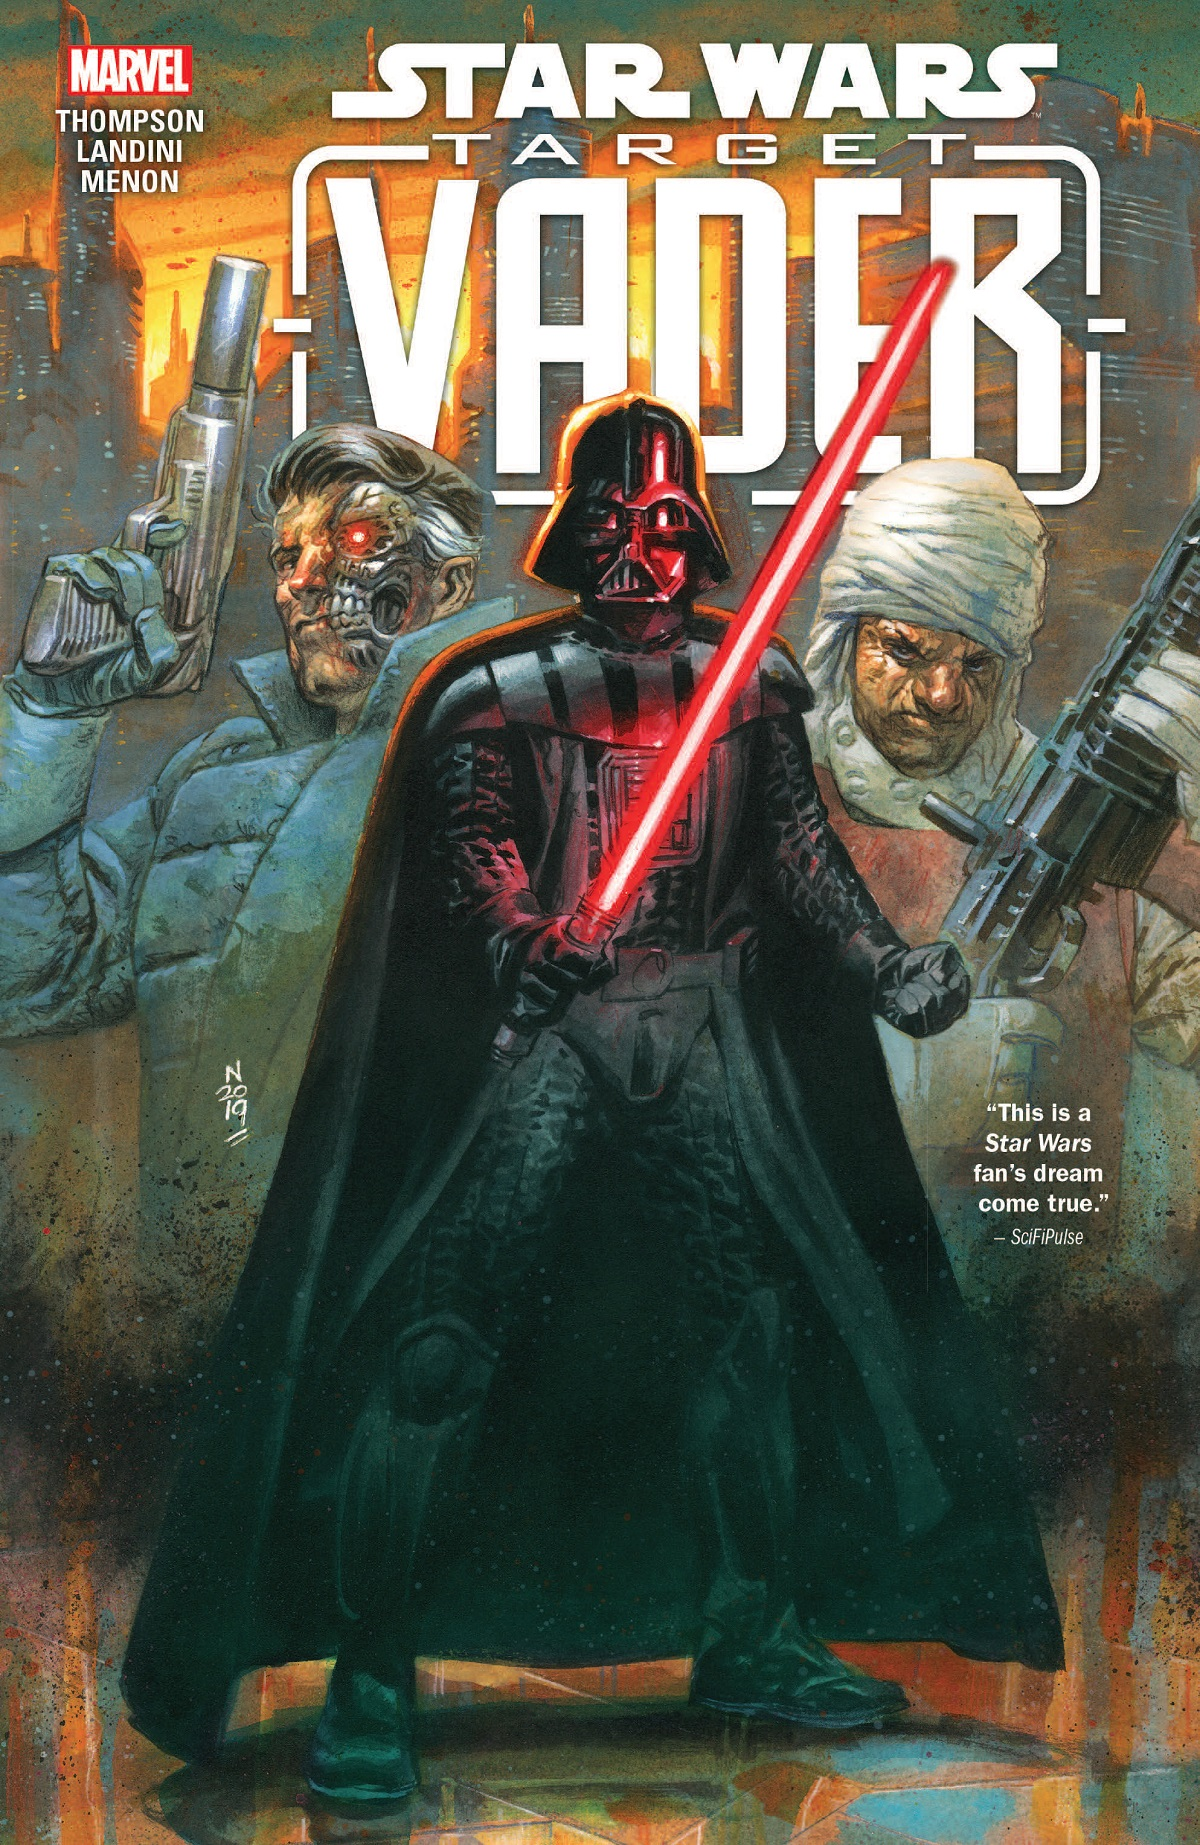 Star Wars: Target Vader Collection Review: A surprisingly human story about an obscure Star Wars cyborg